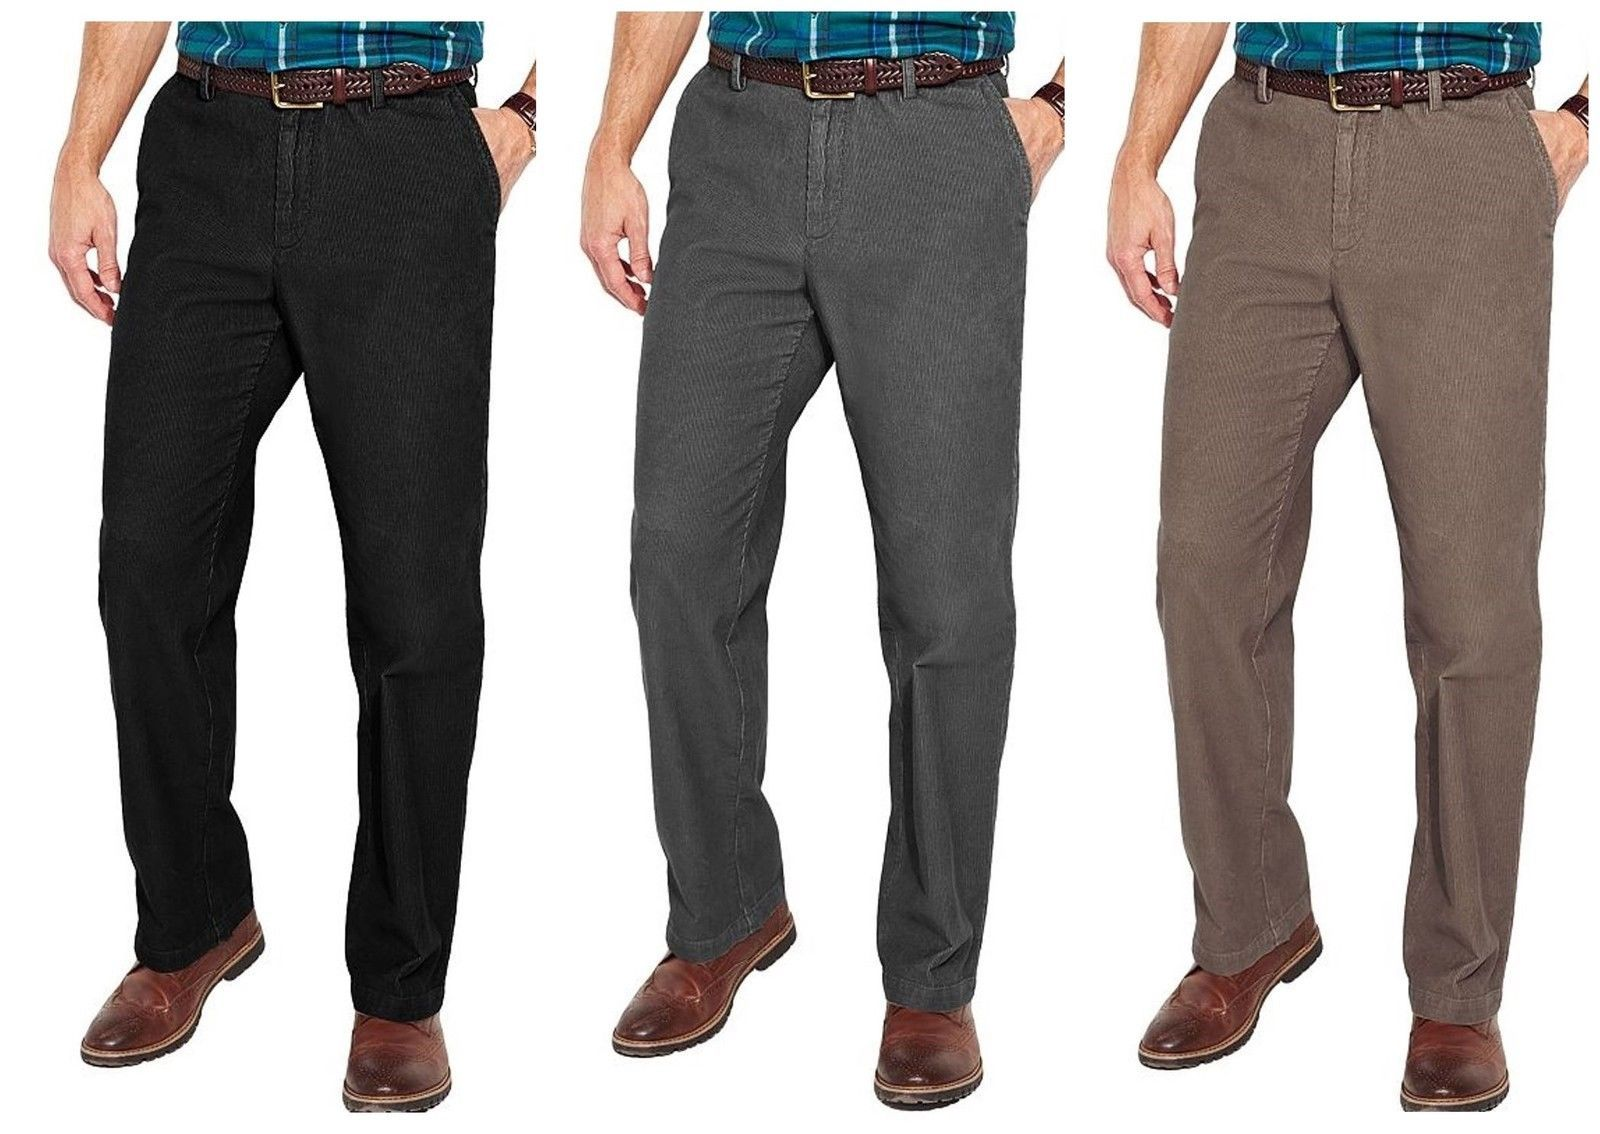 official great variety models select for newest Croft & Barrow Mens Corduroy Pants Flat and 50 similar items